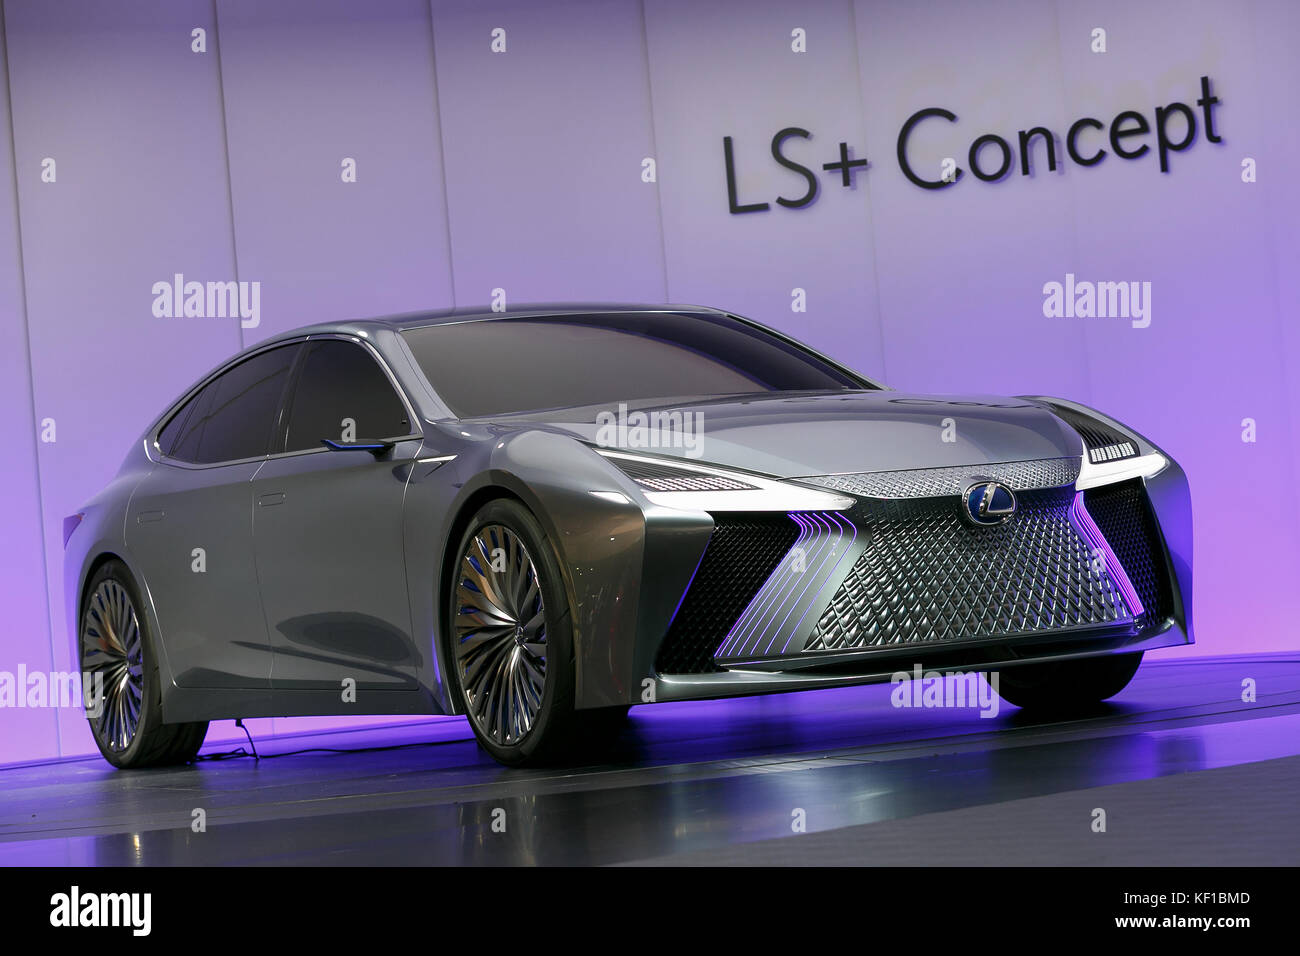 http://c8.alamy.com/comp/KF1BMD/tokyo-japan-25th-oct-2017-lexus-ls-plus-concept-vehicle-on-display-KF1BMD.jpg